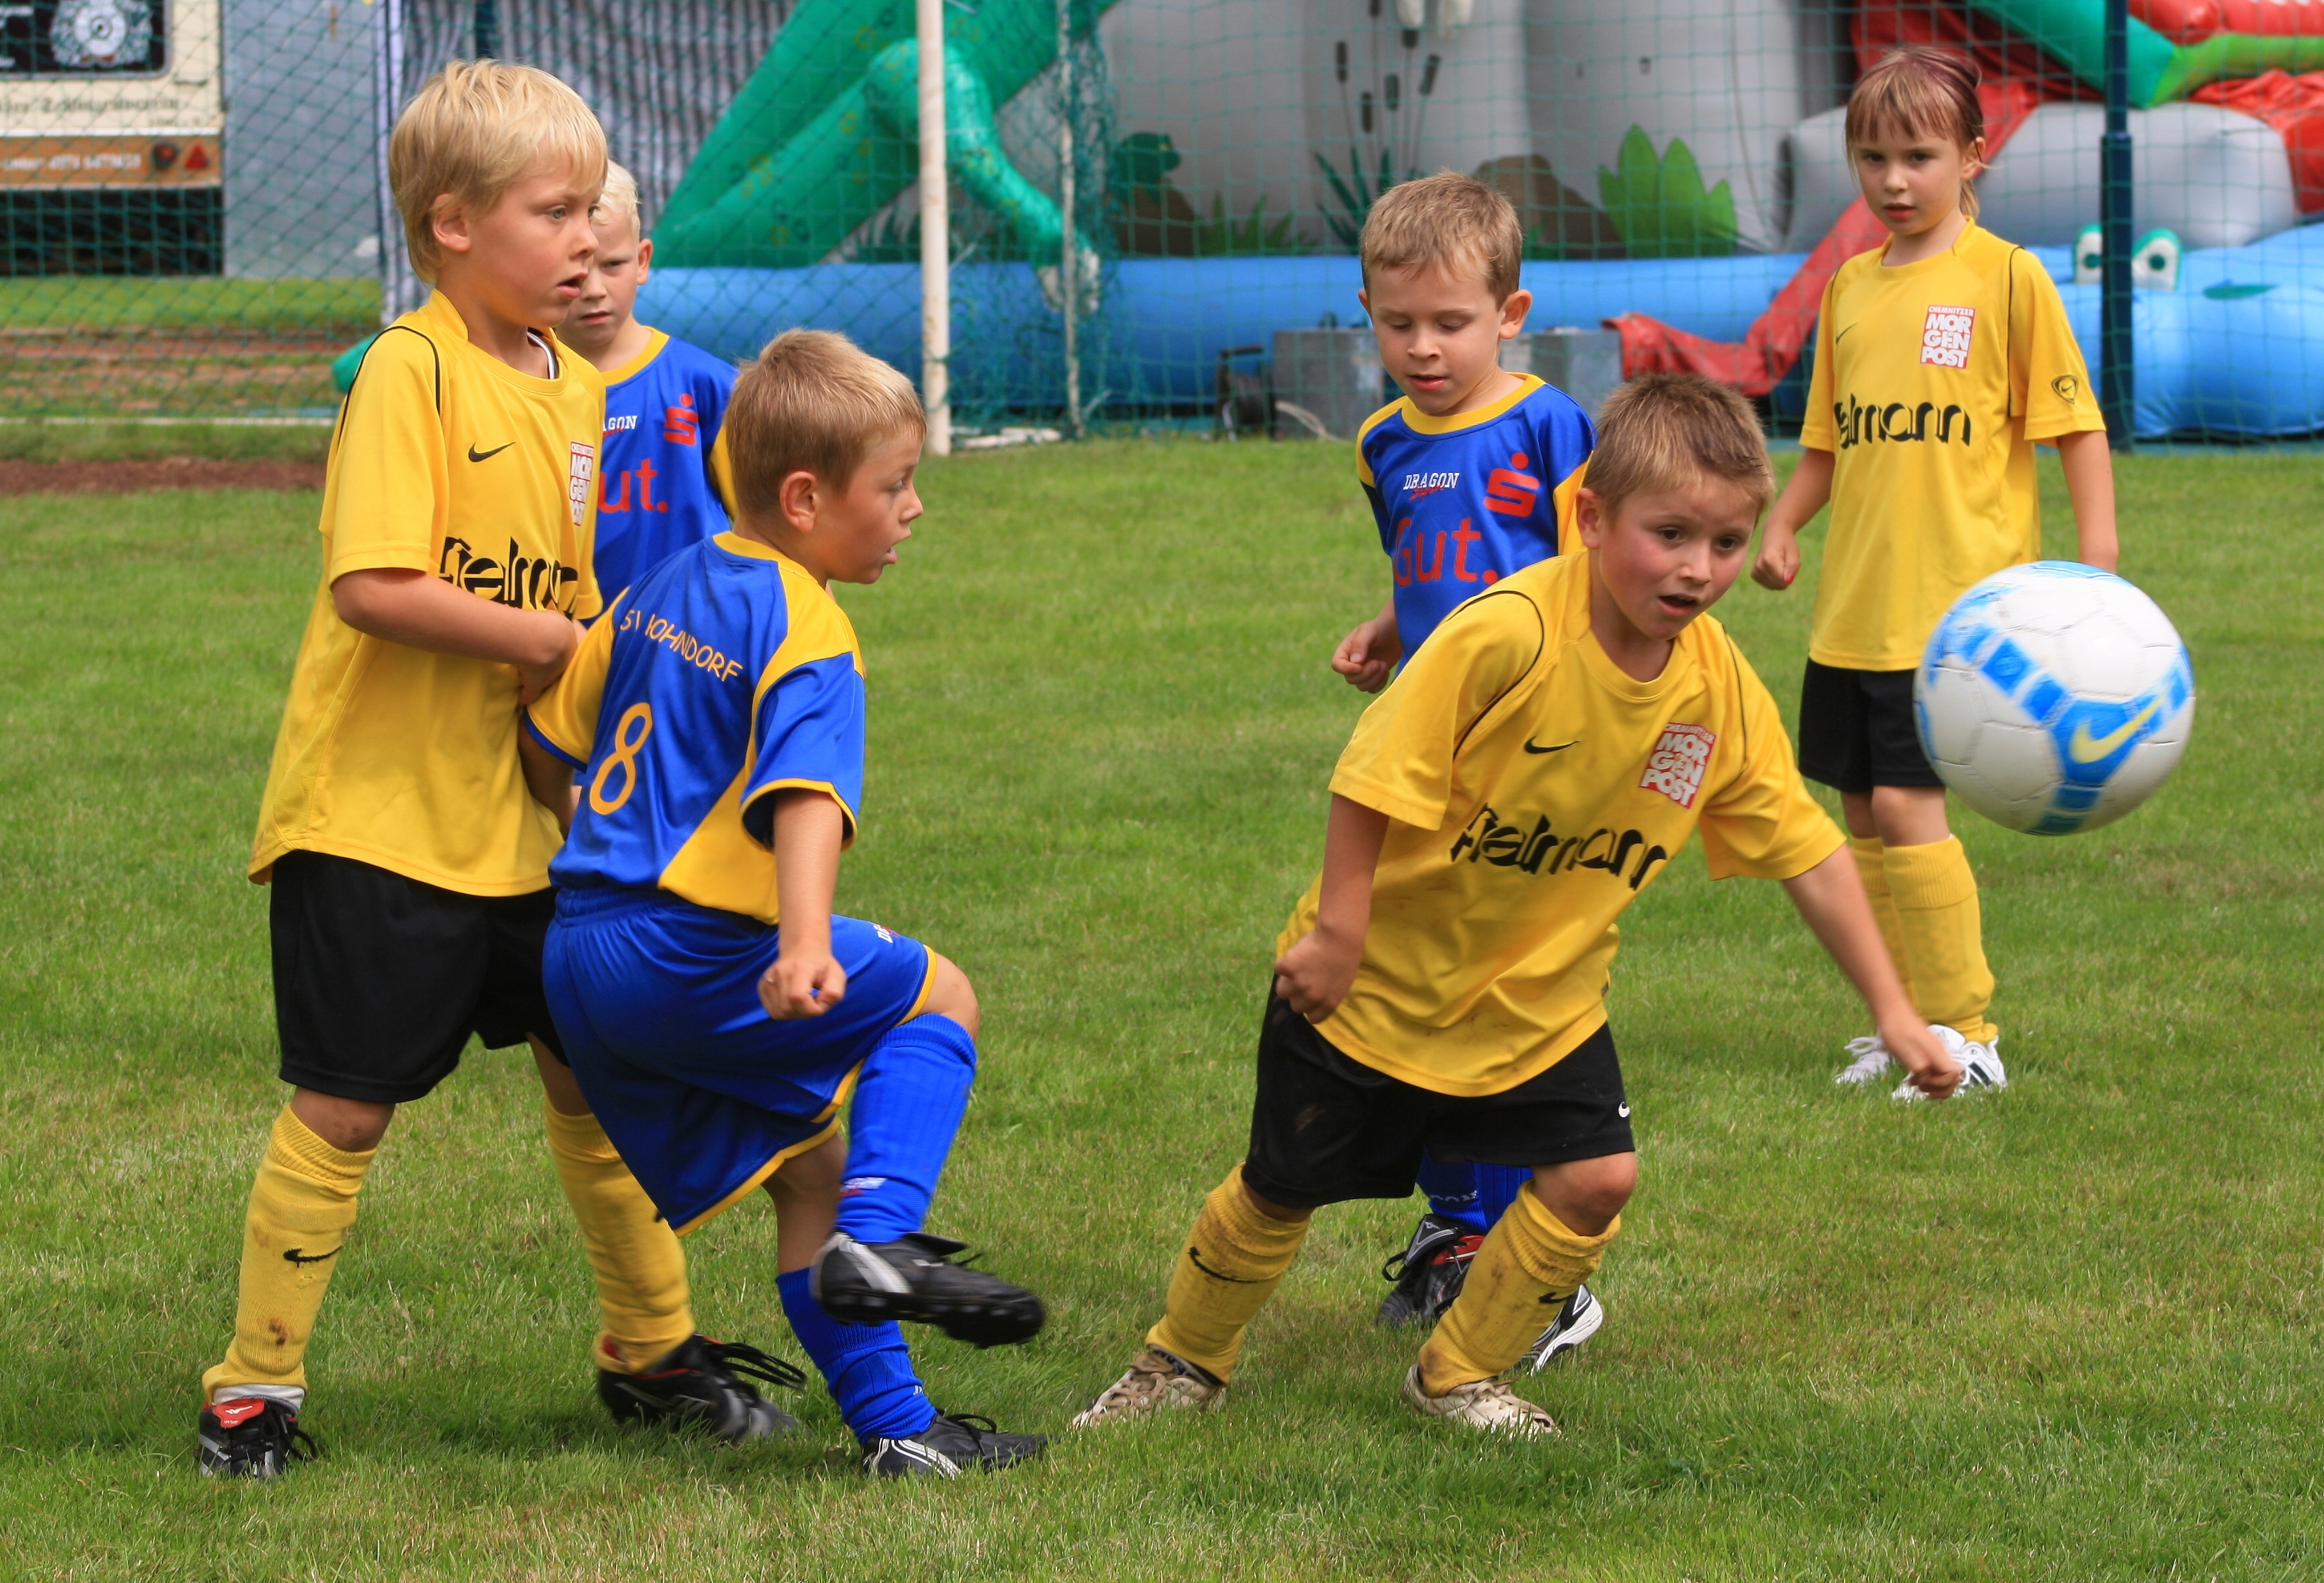 Summer Physical Activities For Kids